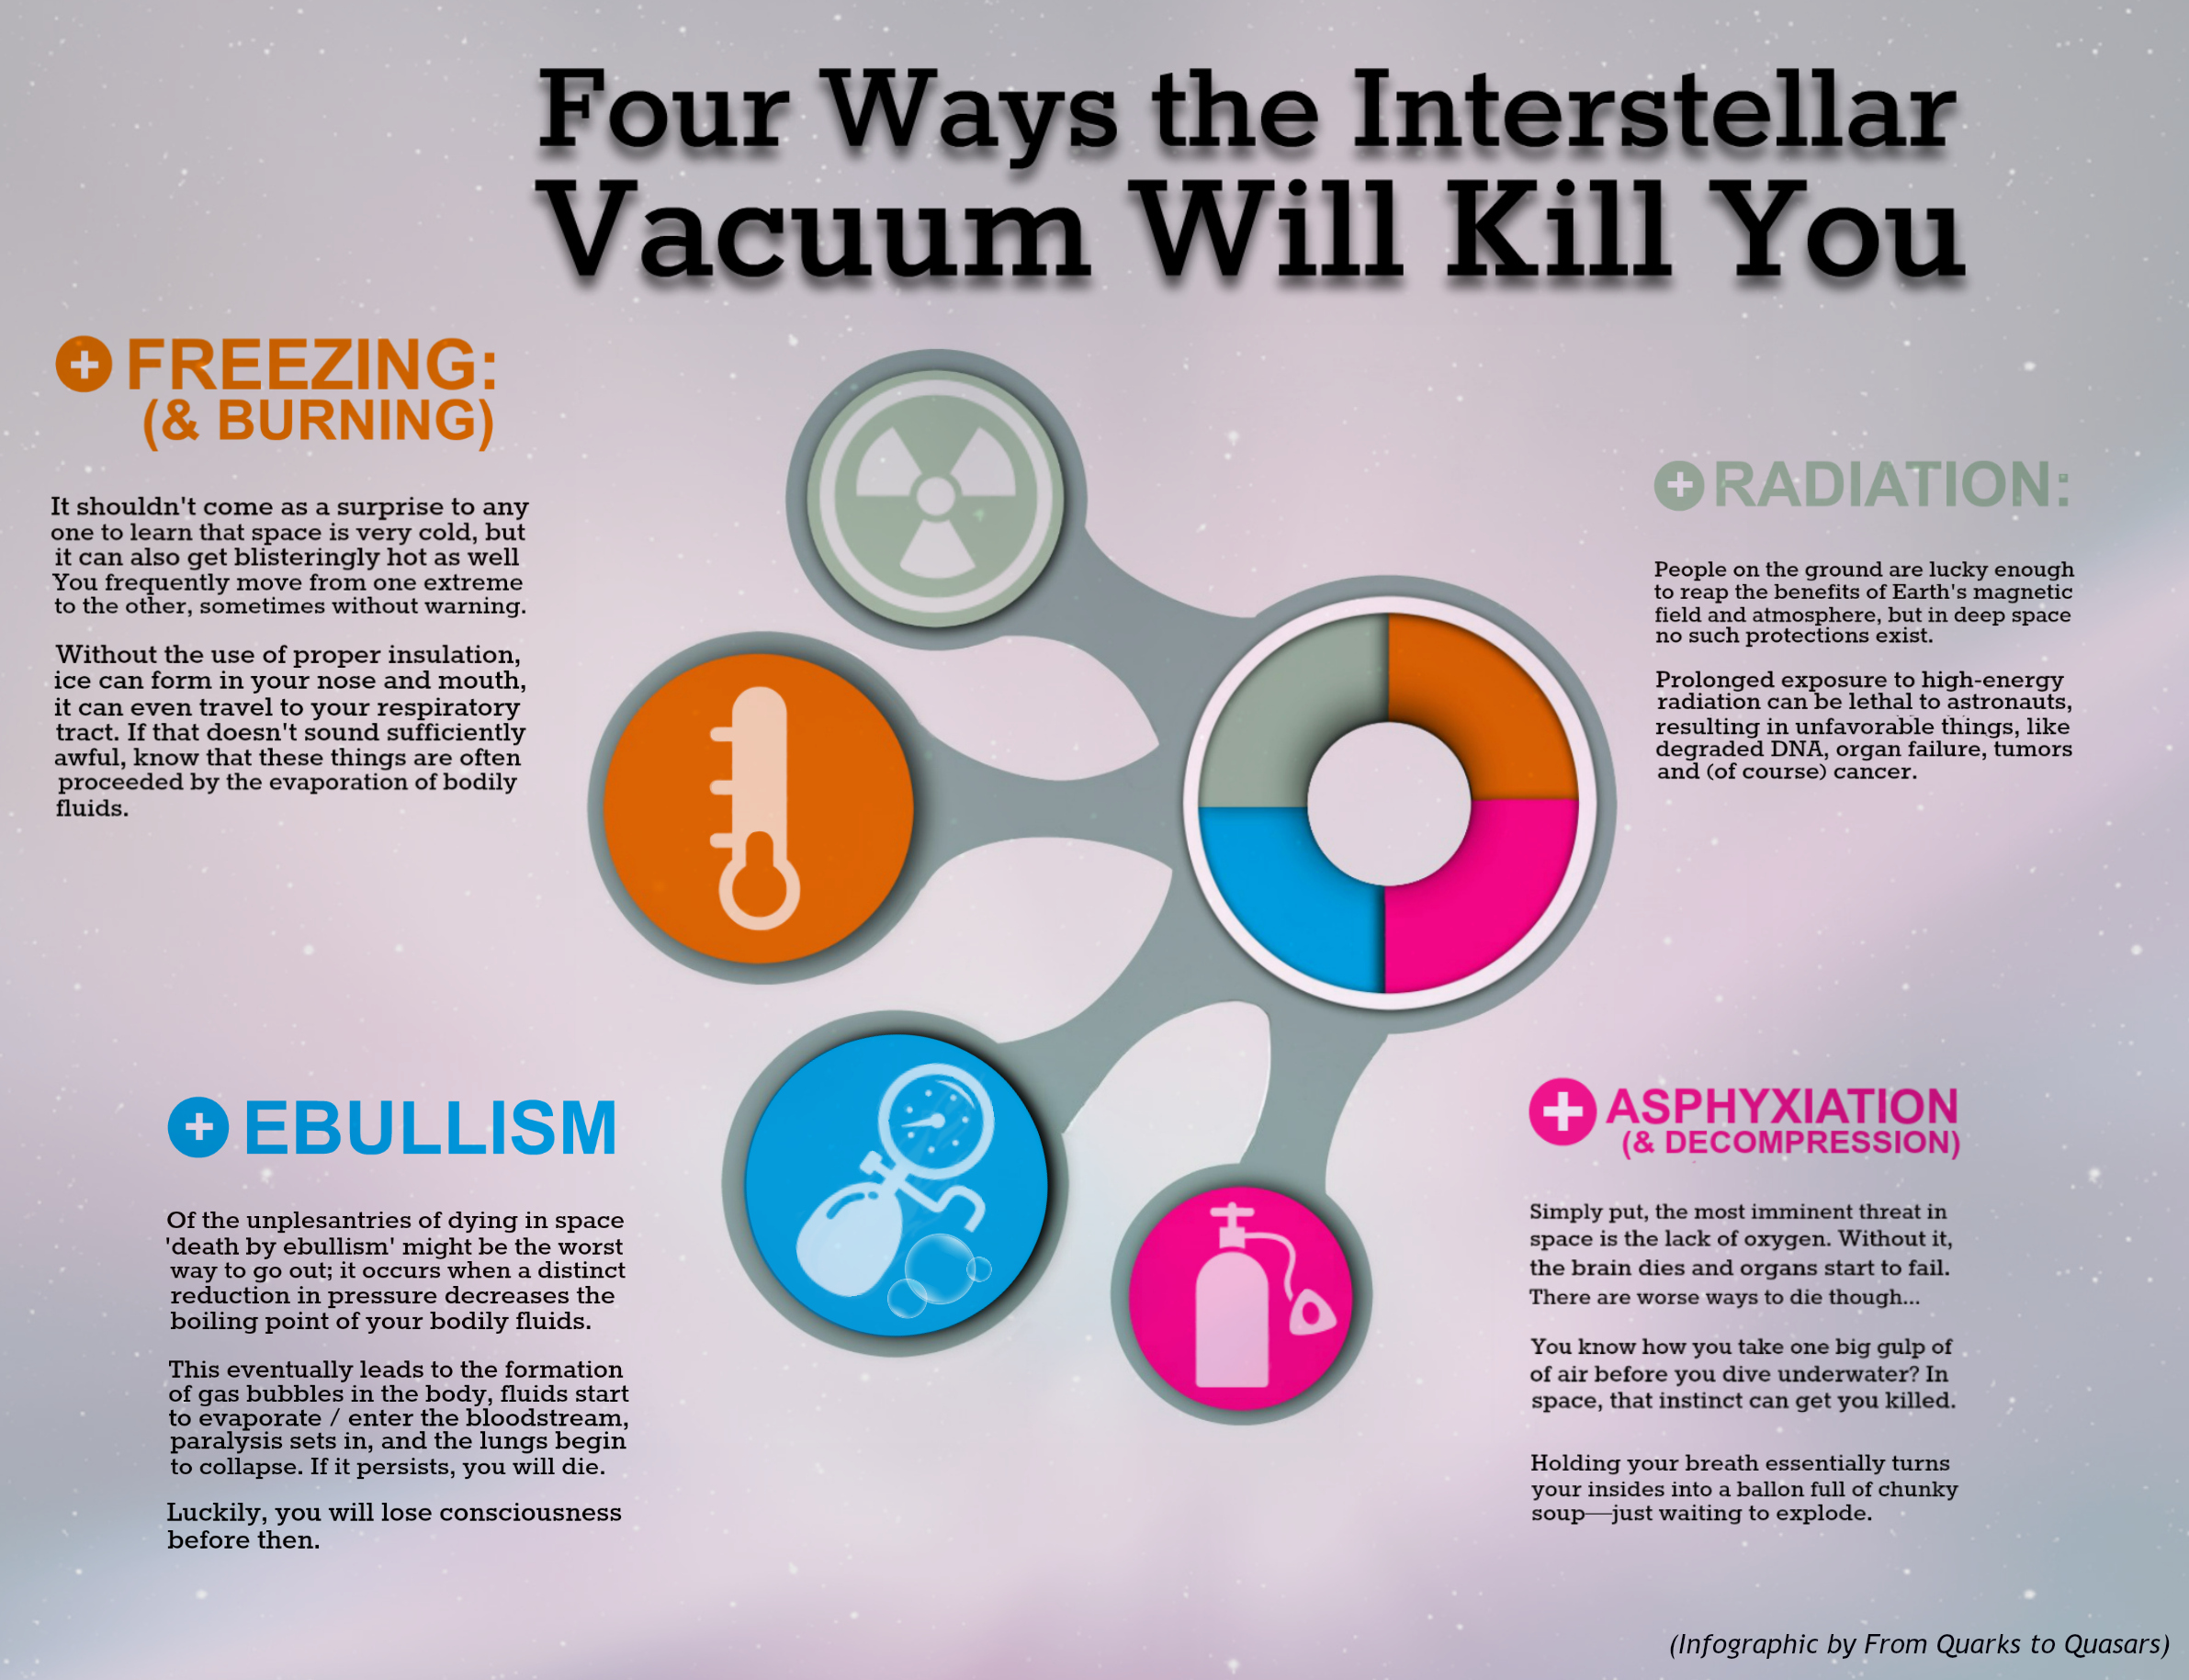 Effects of Vacuum Infographic